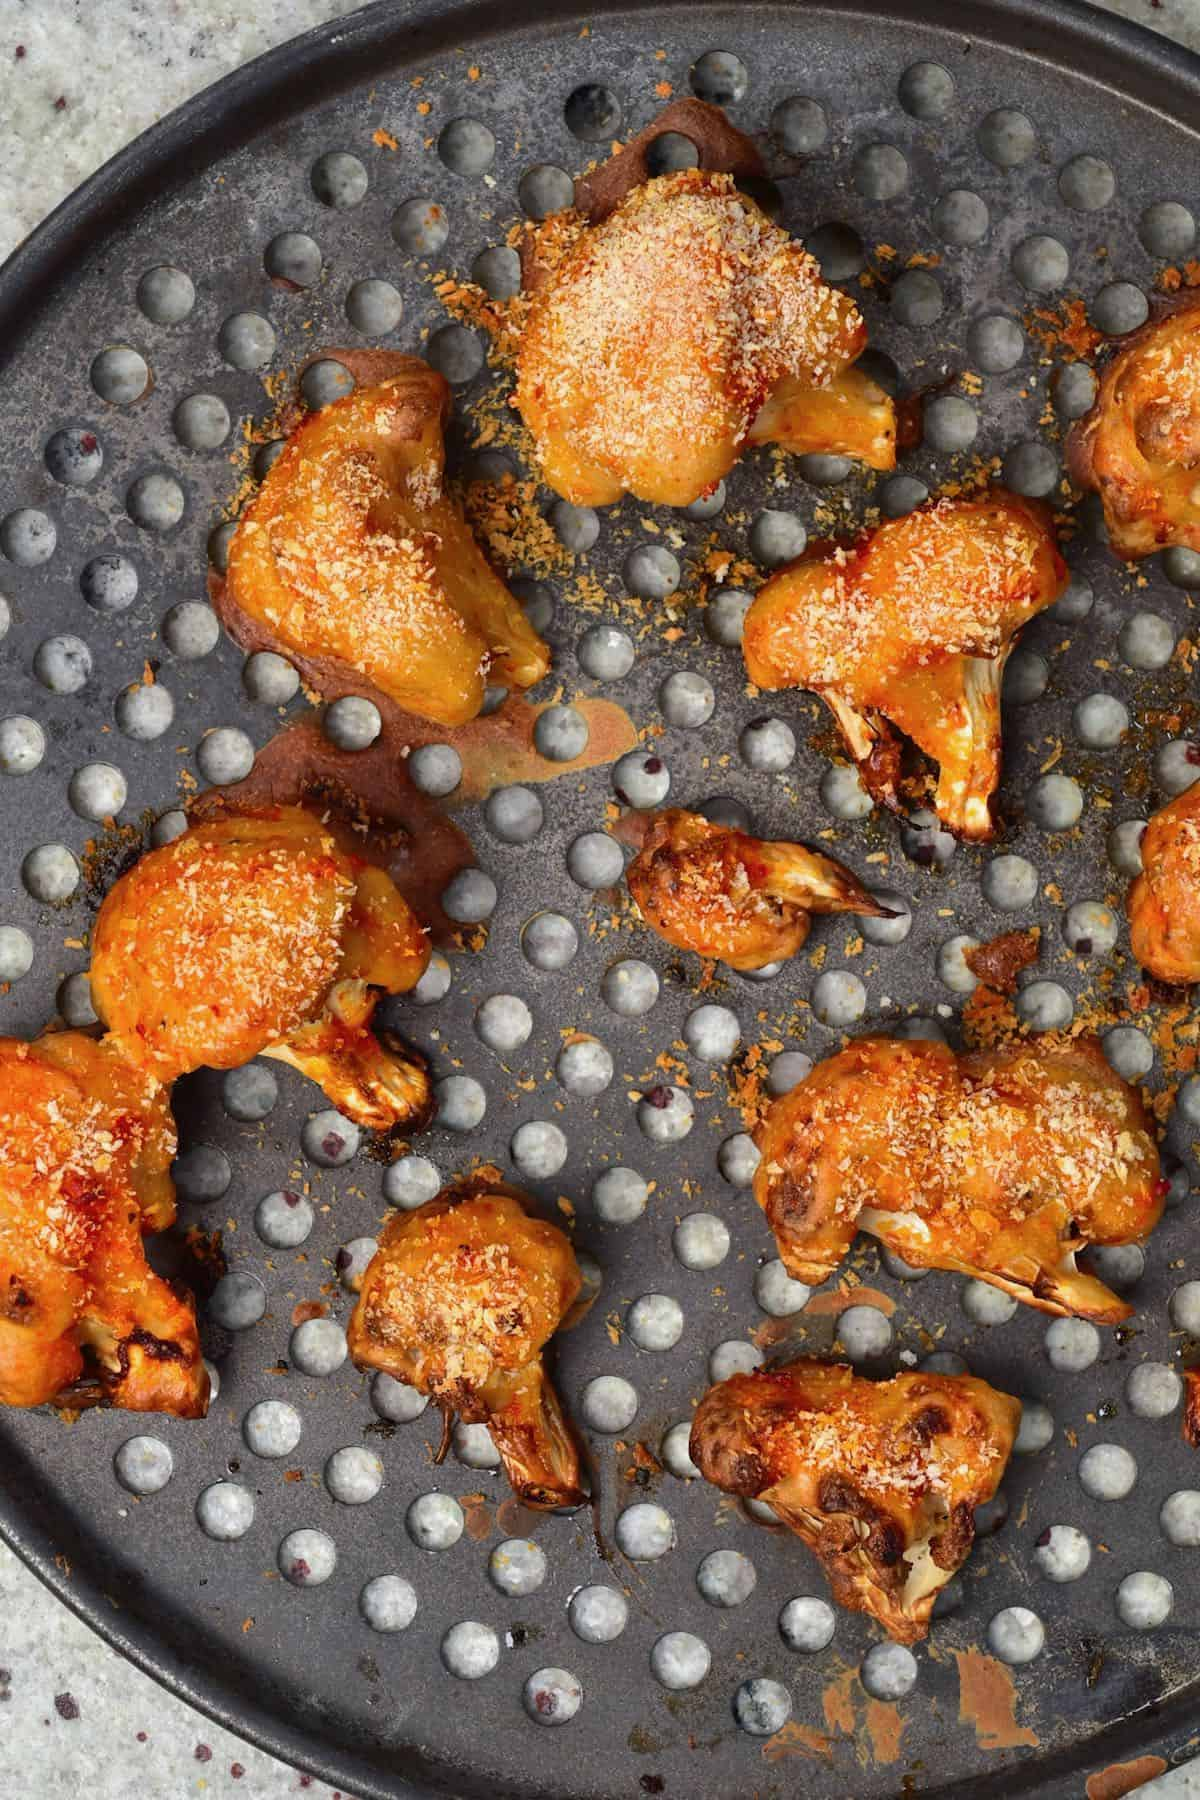 A baking tray with baked breaded cauliflower wings